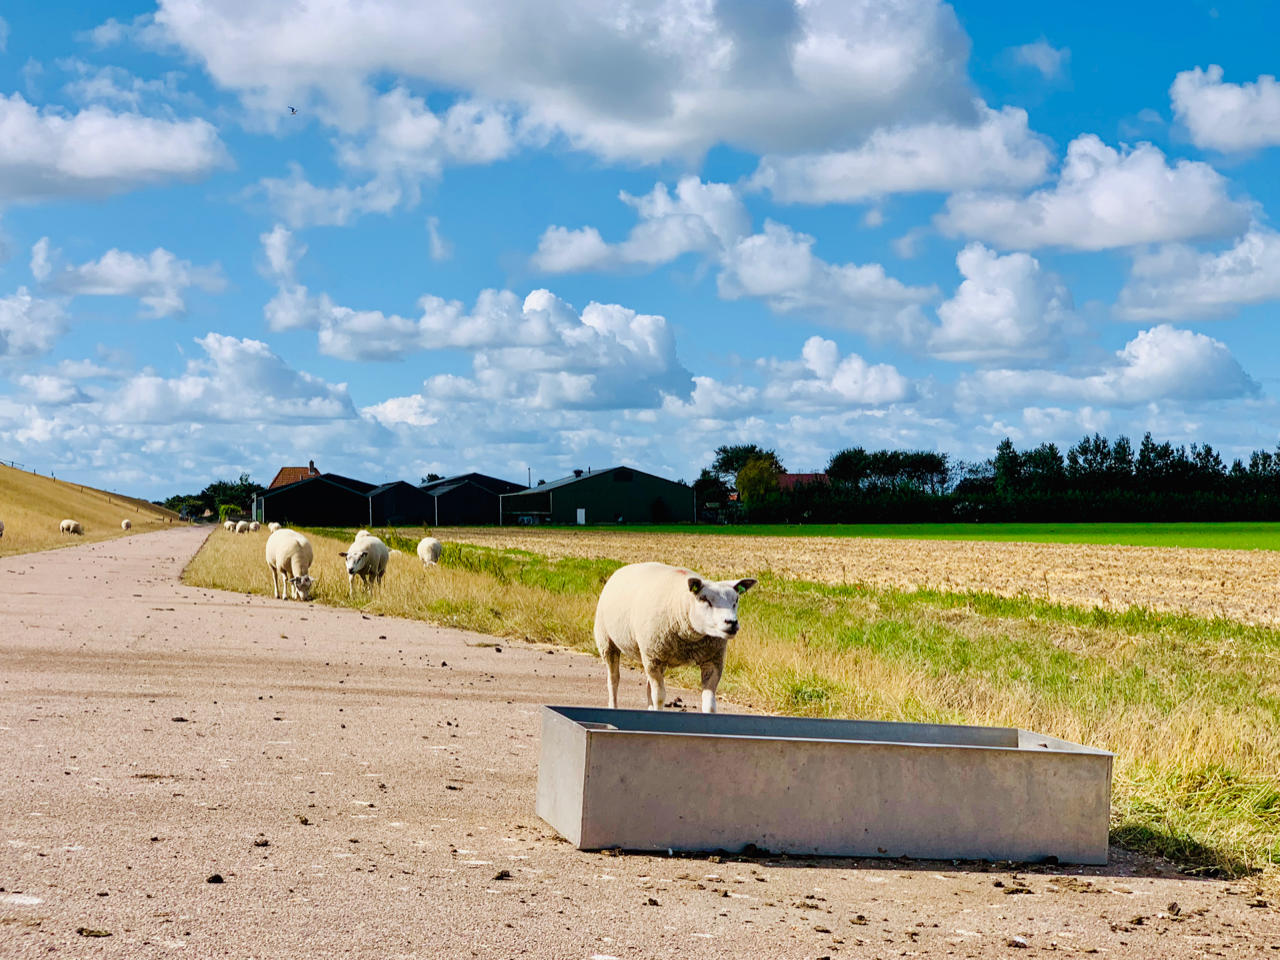 a beautiful image of sheep grazing on the Wadden Sea Dyke on the island of Texel